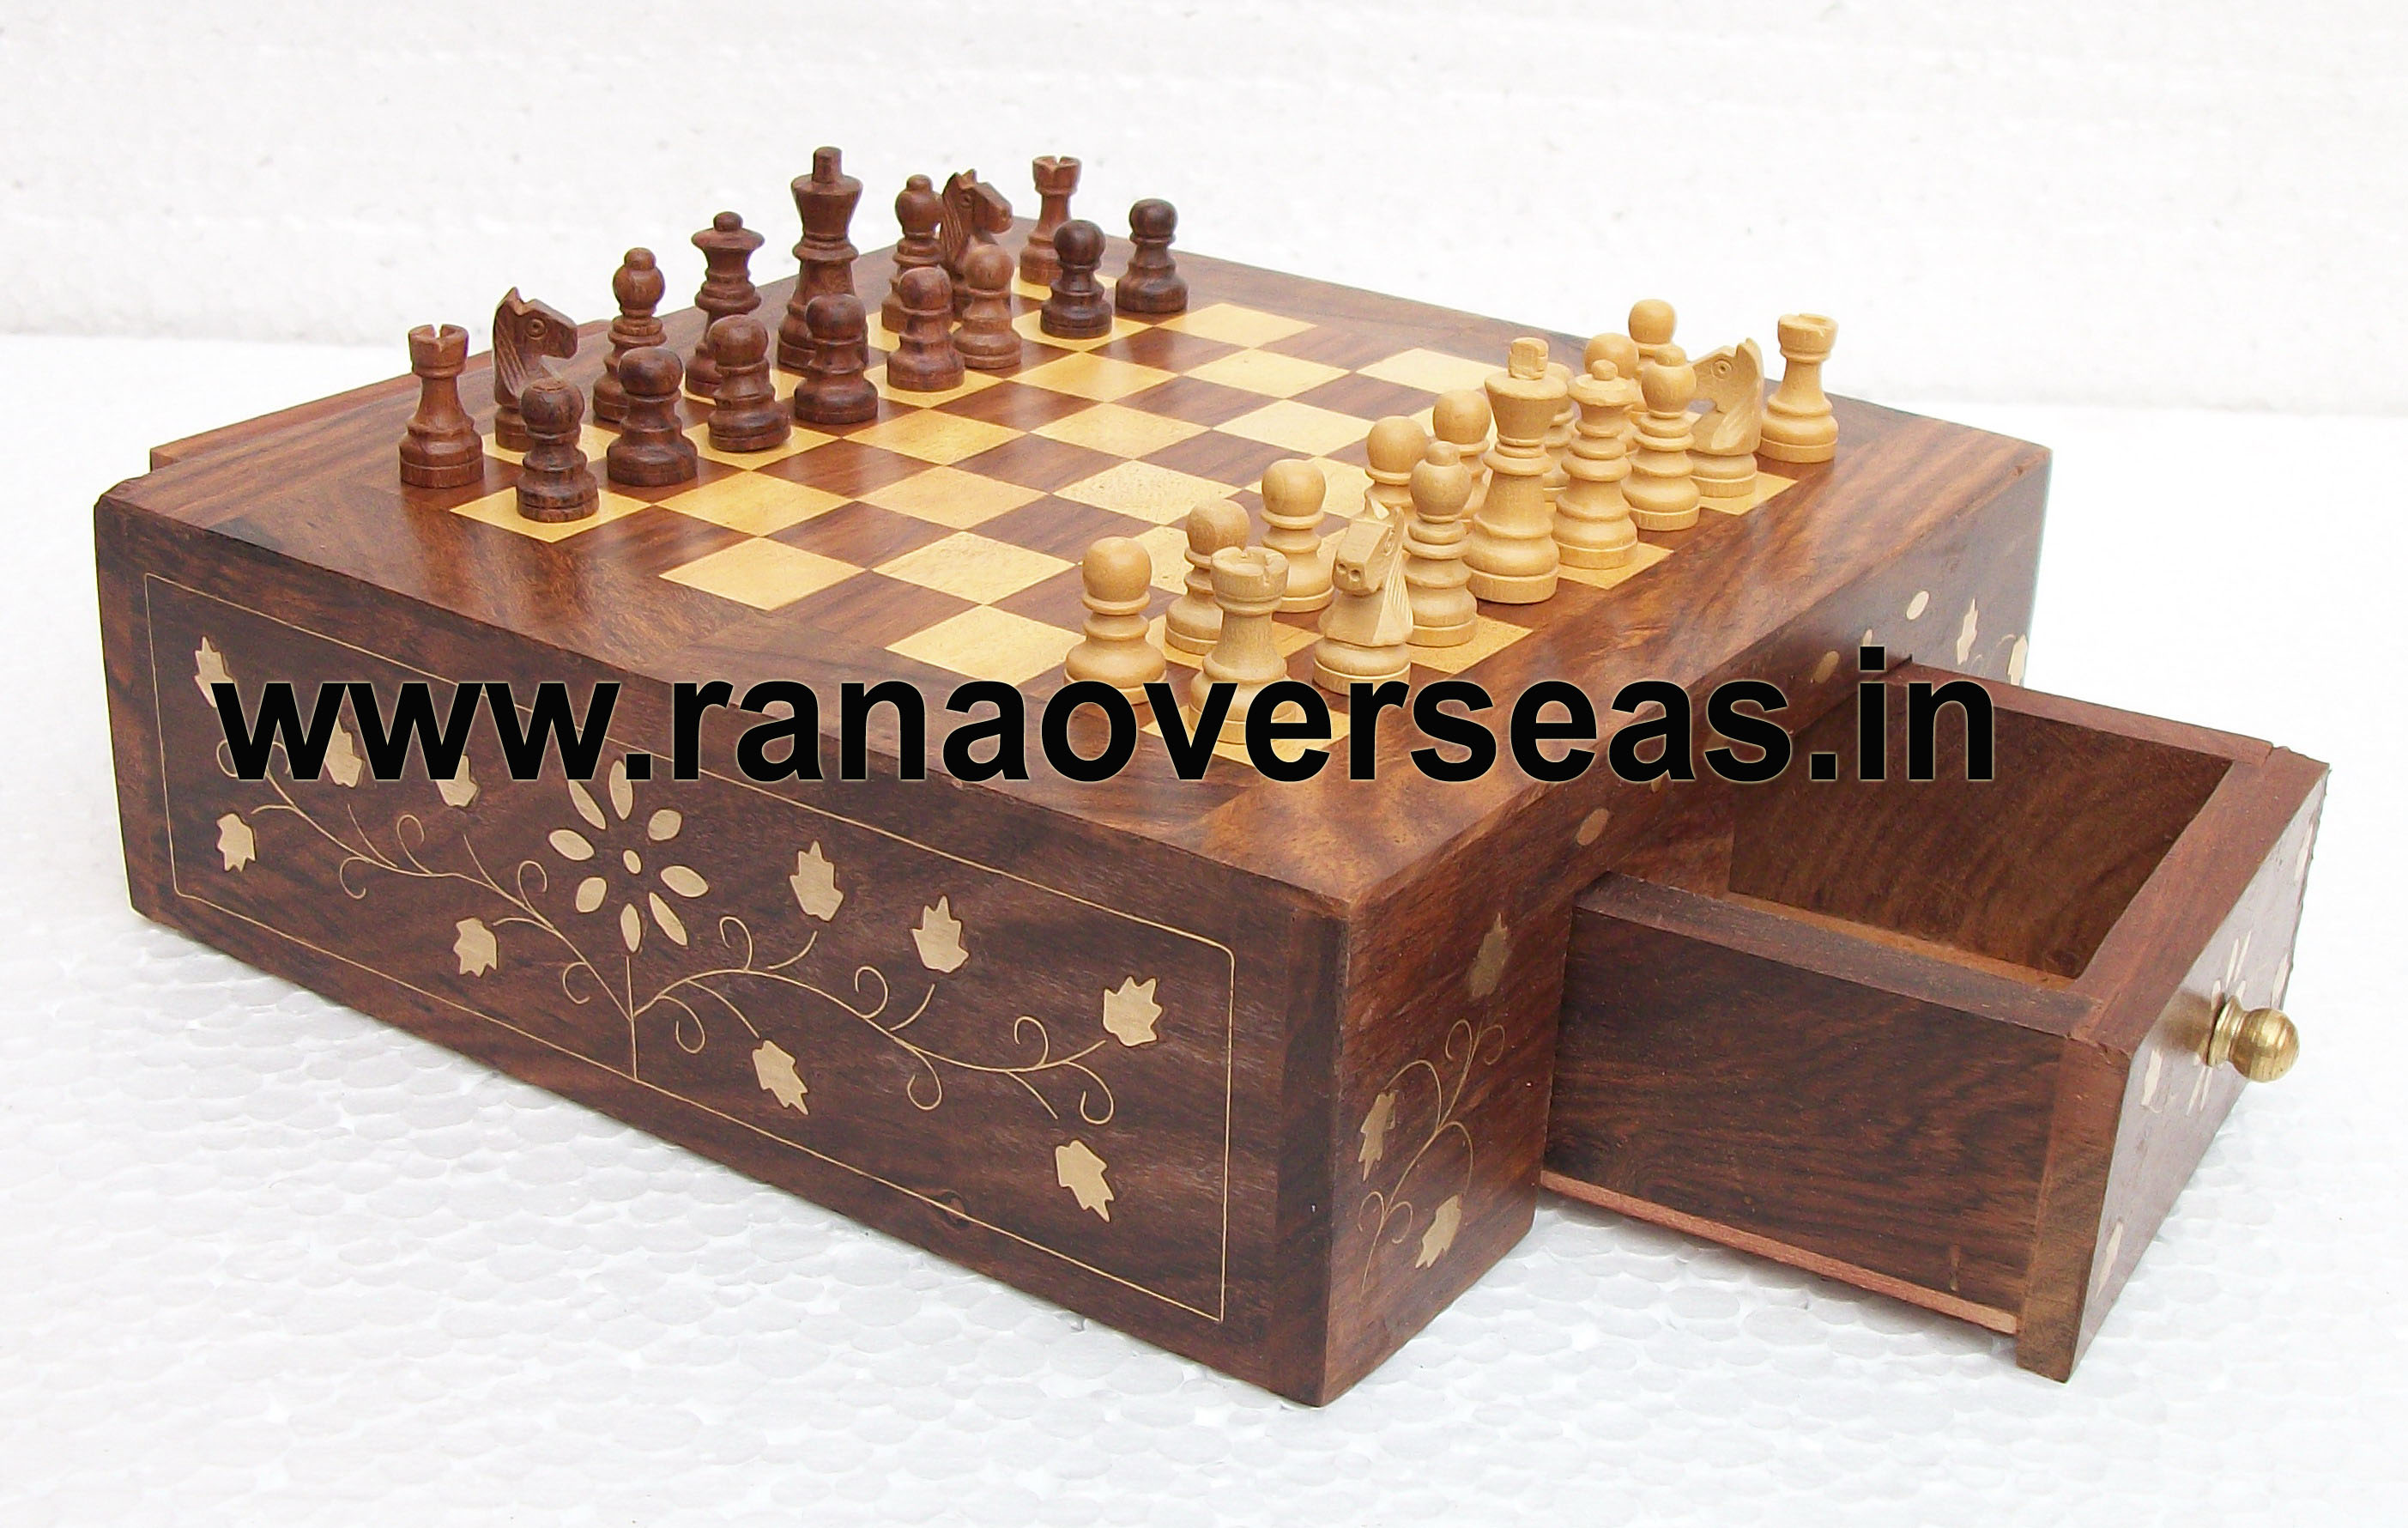 Round Chess Set Wooden Chess Box Wooden Chess Set Wooden Round Chess